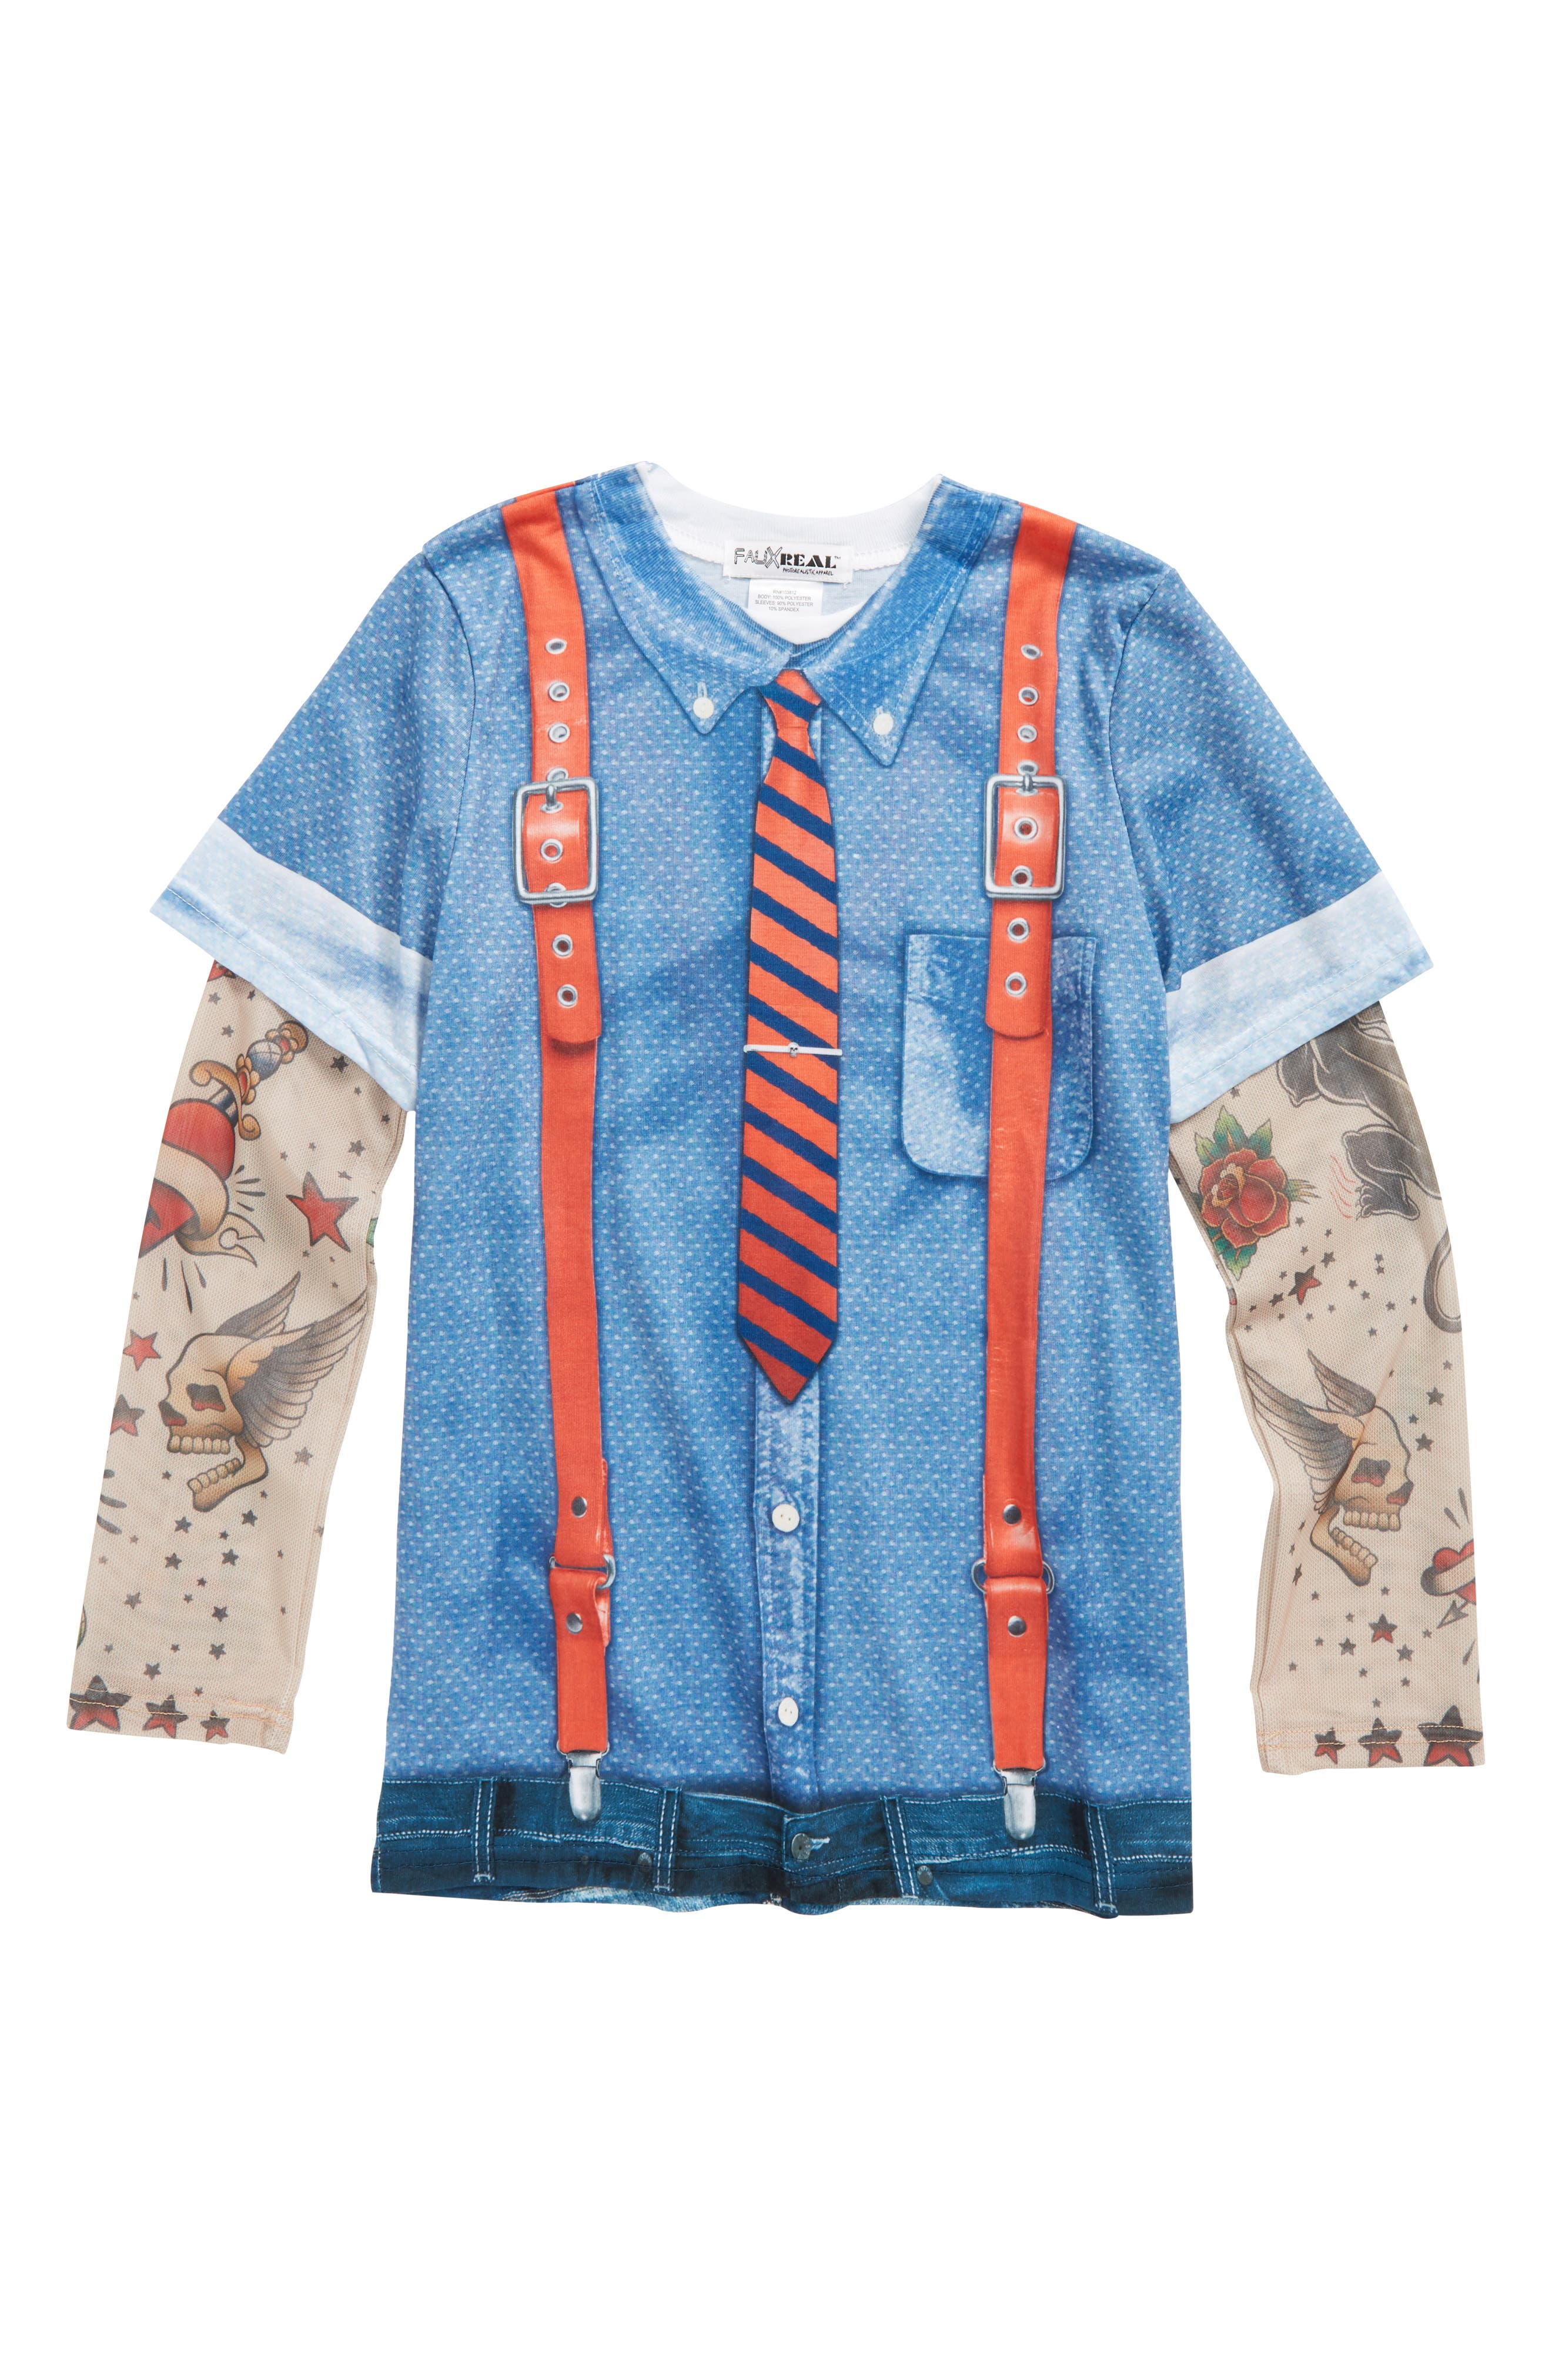 Hipster Tie & Suspenders T-Shirt with Tattoo Print Sleeves,                         Main,                         color, 400